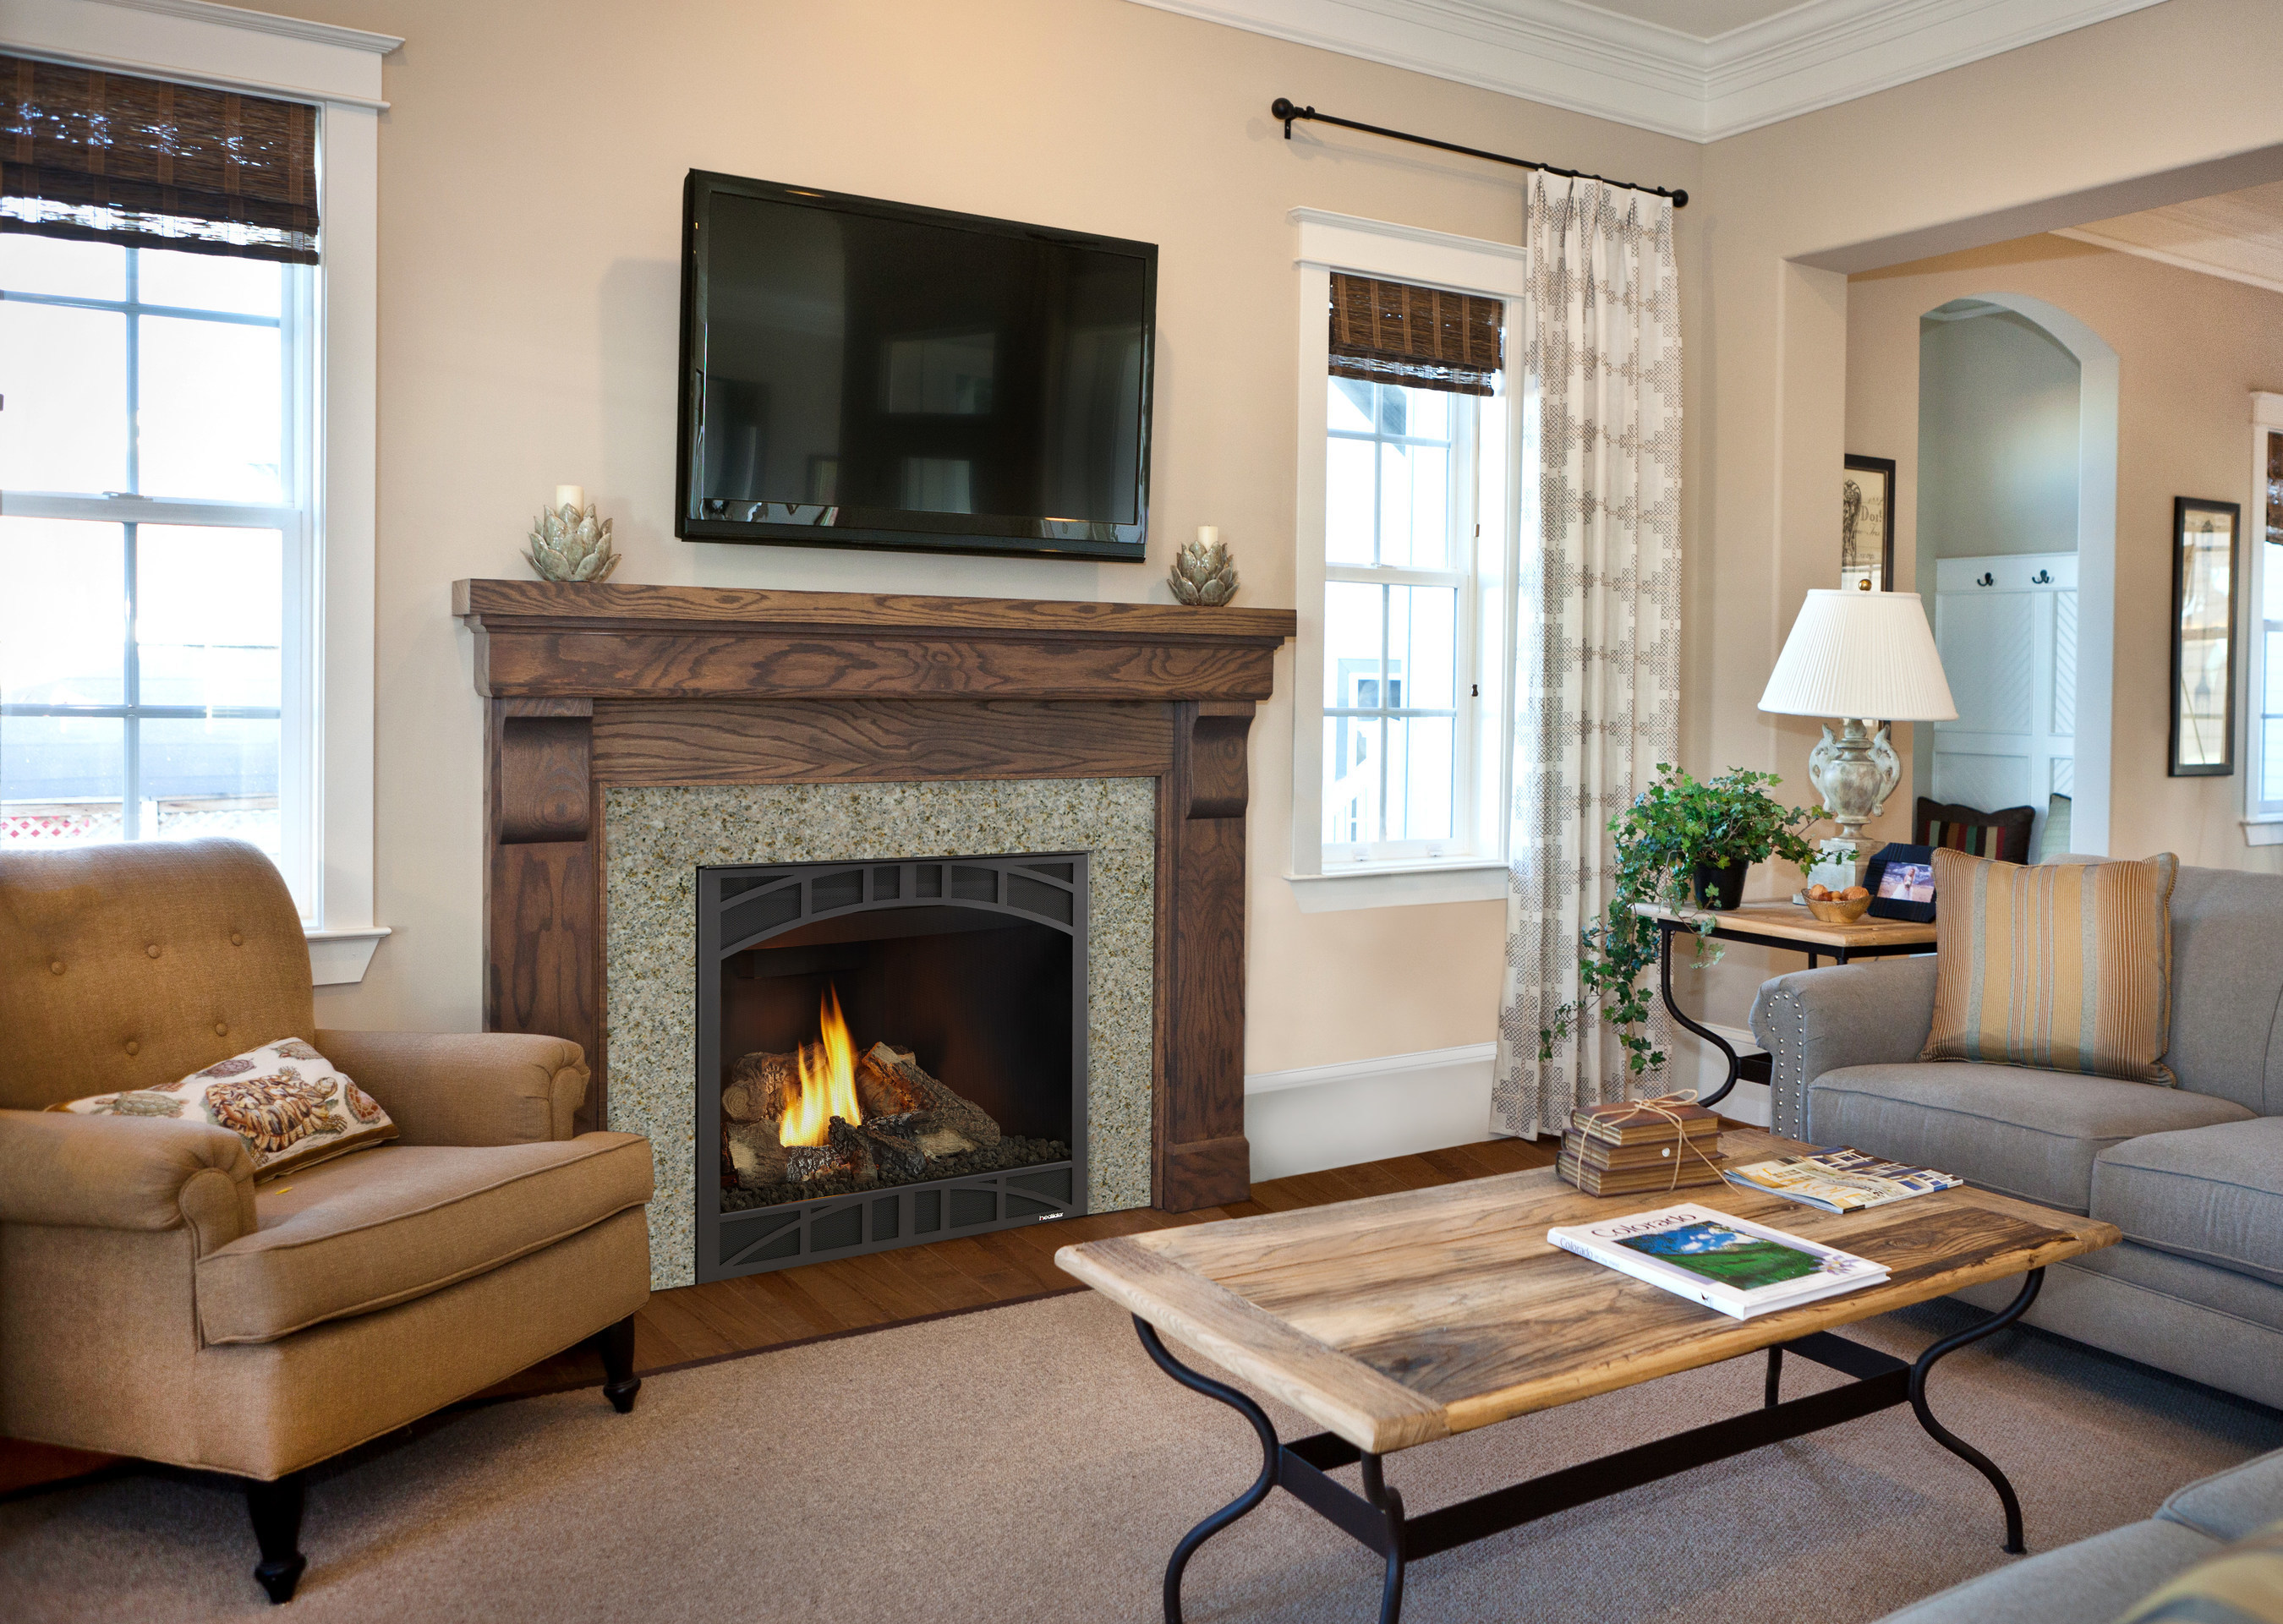 The best-selling fireplace for more than two decades, the Heatilator Novus is incredibly versatile, with excellent venting capabilities, and easy to install anywhere.